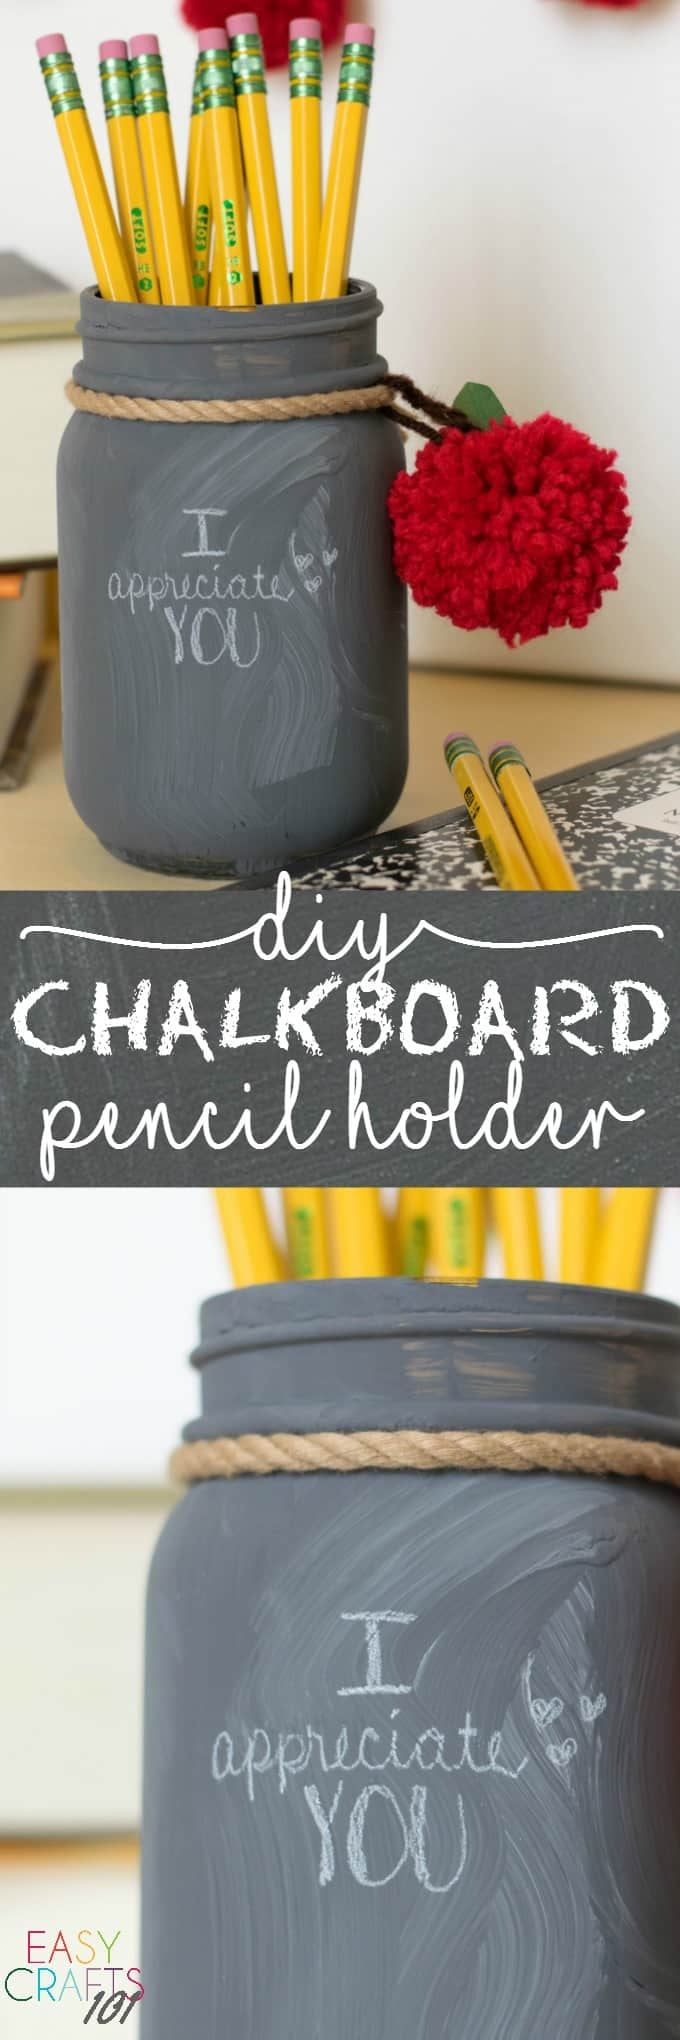 Easy Teacher Appreciation Day Craft DIY Pencil Holder